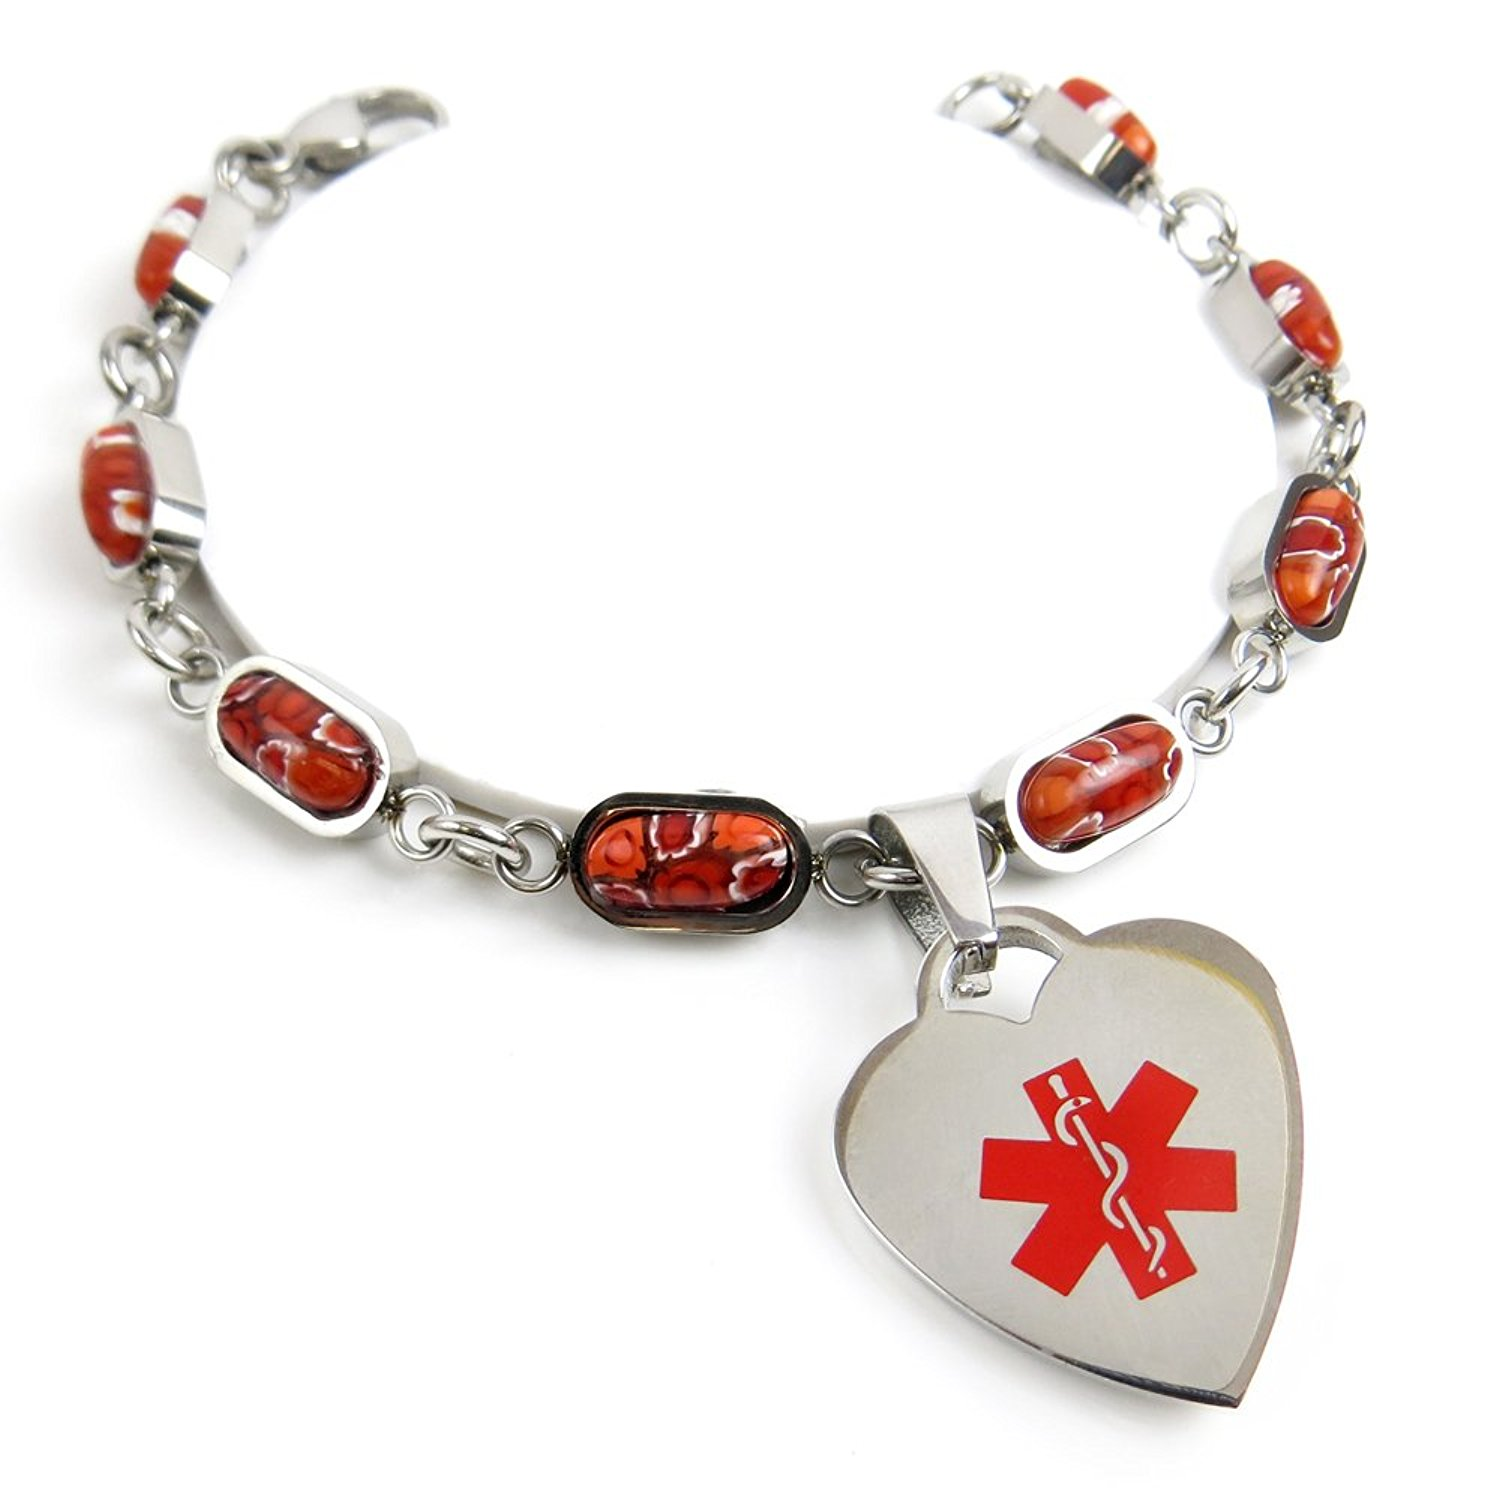 My Identity Doctor Pre-Engraved /& Customized Hearing Impaired Charm Medical Bracelet White Red Millefiori Glass